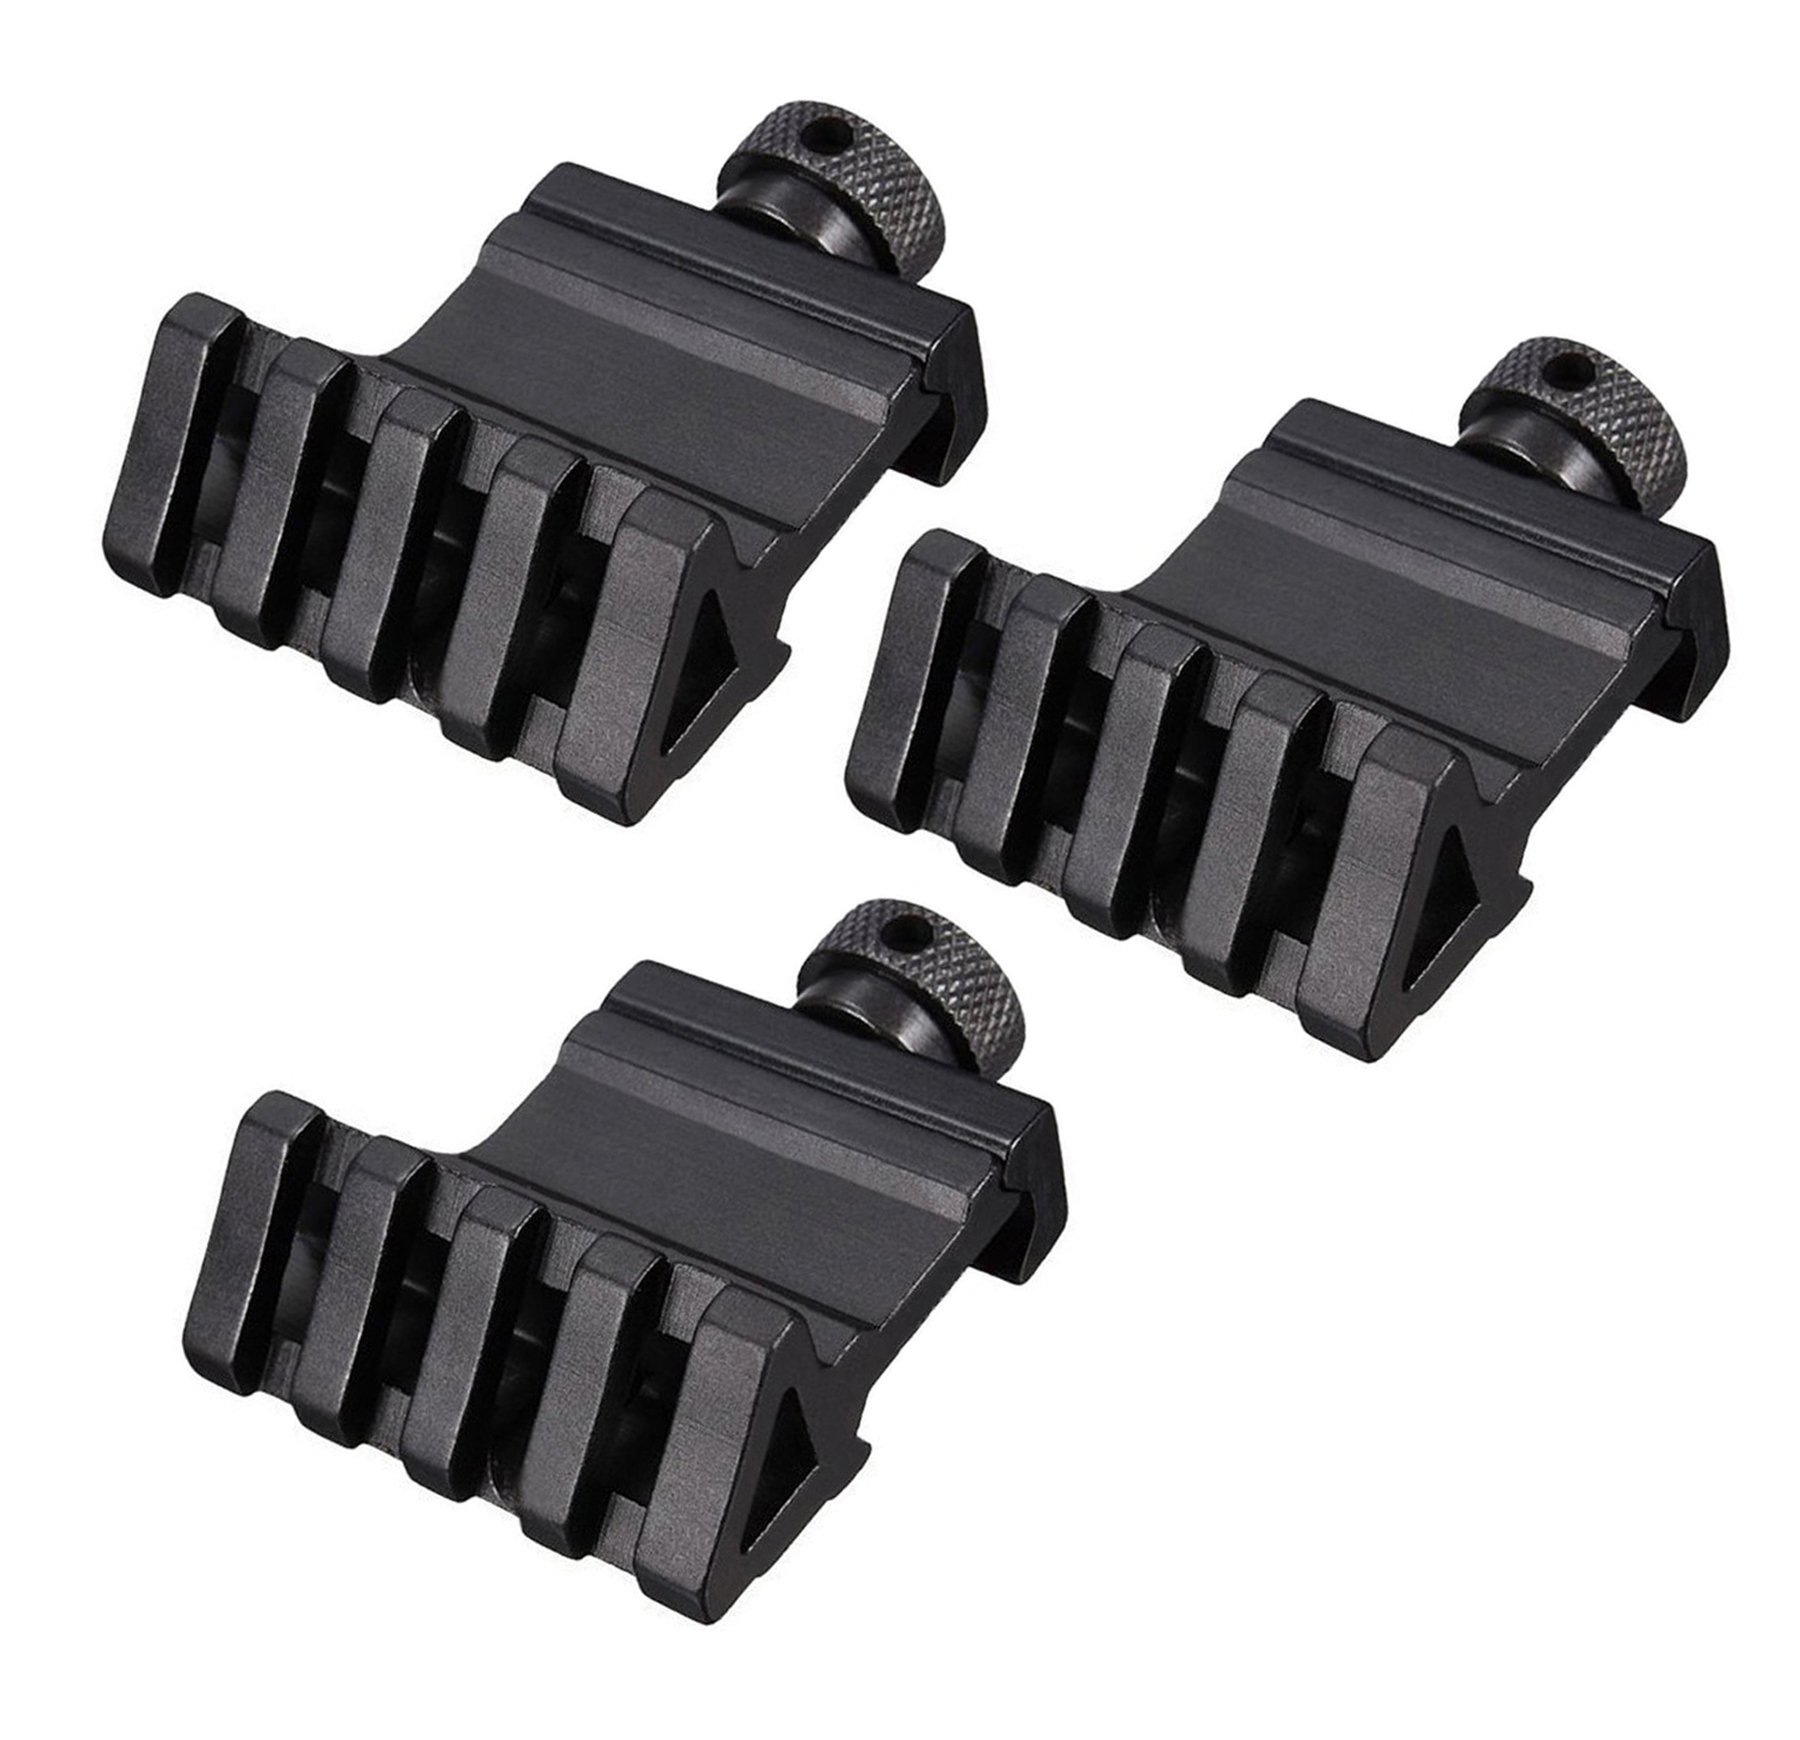 HooGou 3 Pcs 45 Degree 20mm 4 Slots Offset Angle Rail Mount Picatinny Weaver Style for Mounting Flashlight Sight Black 3 Pack